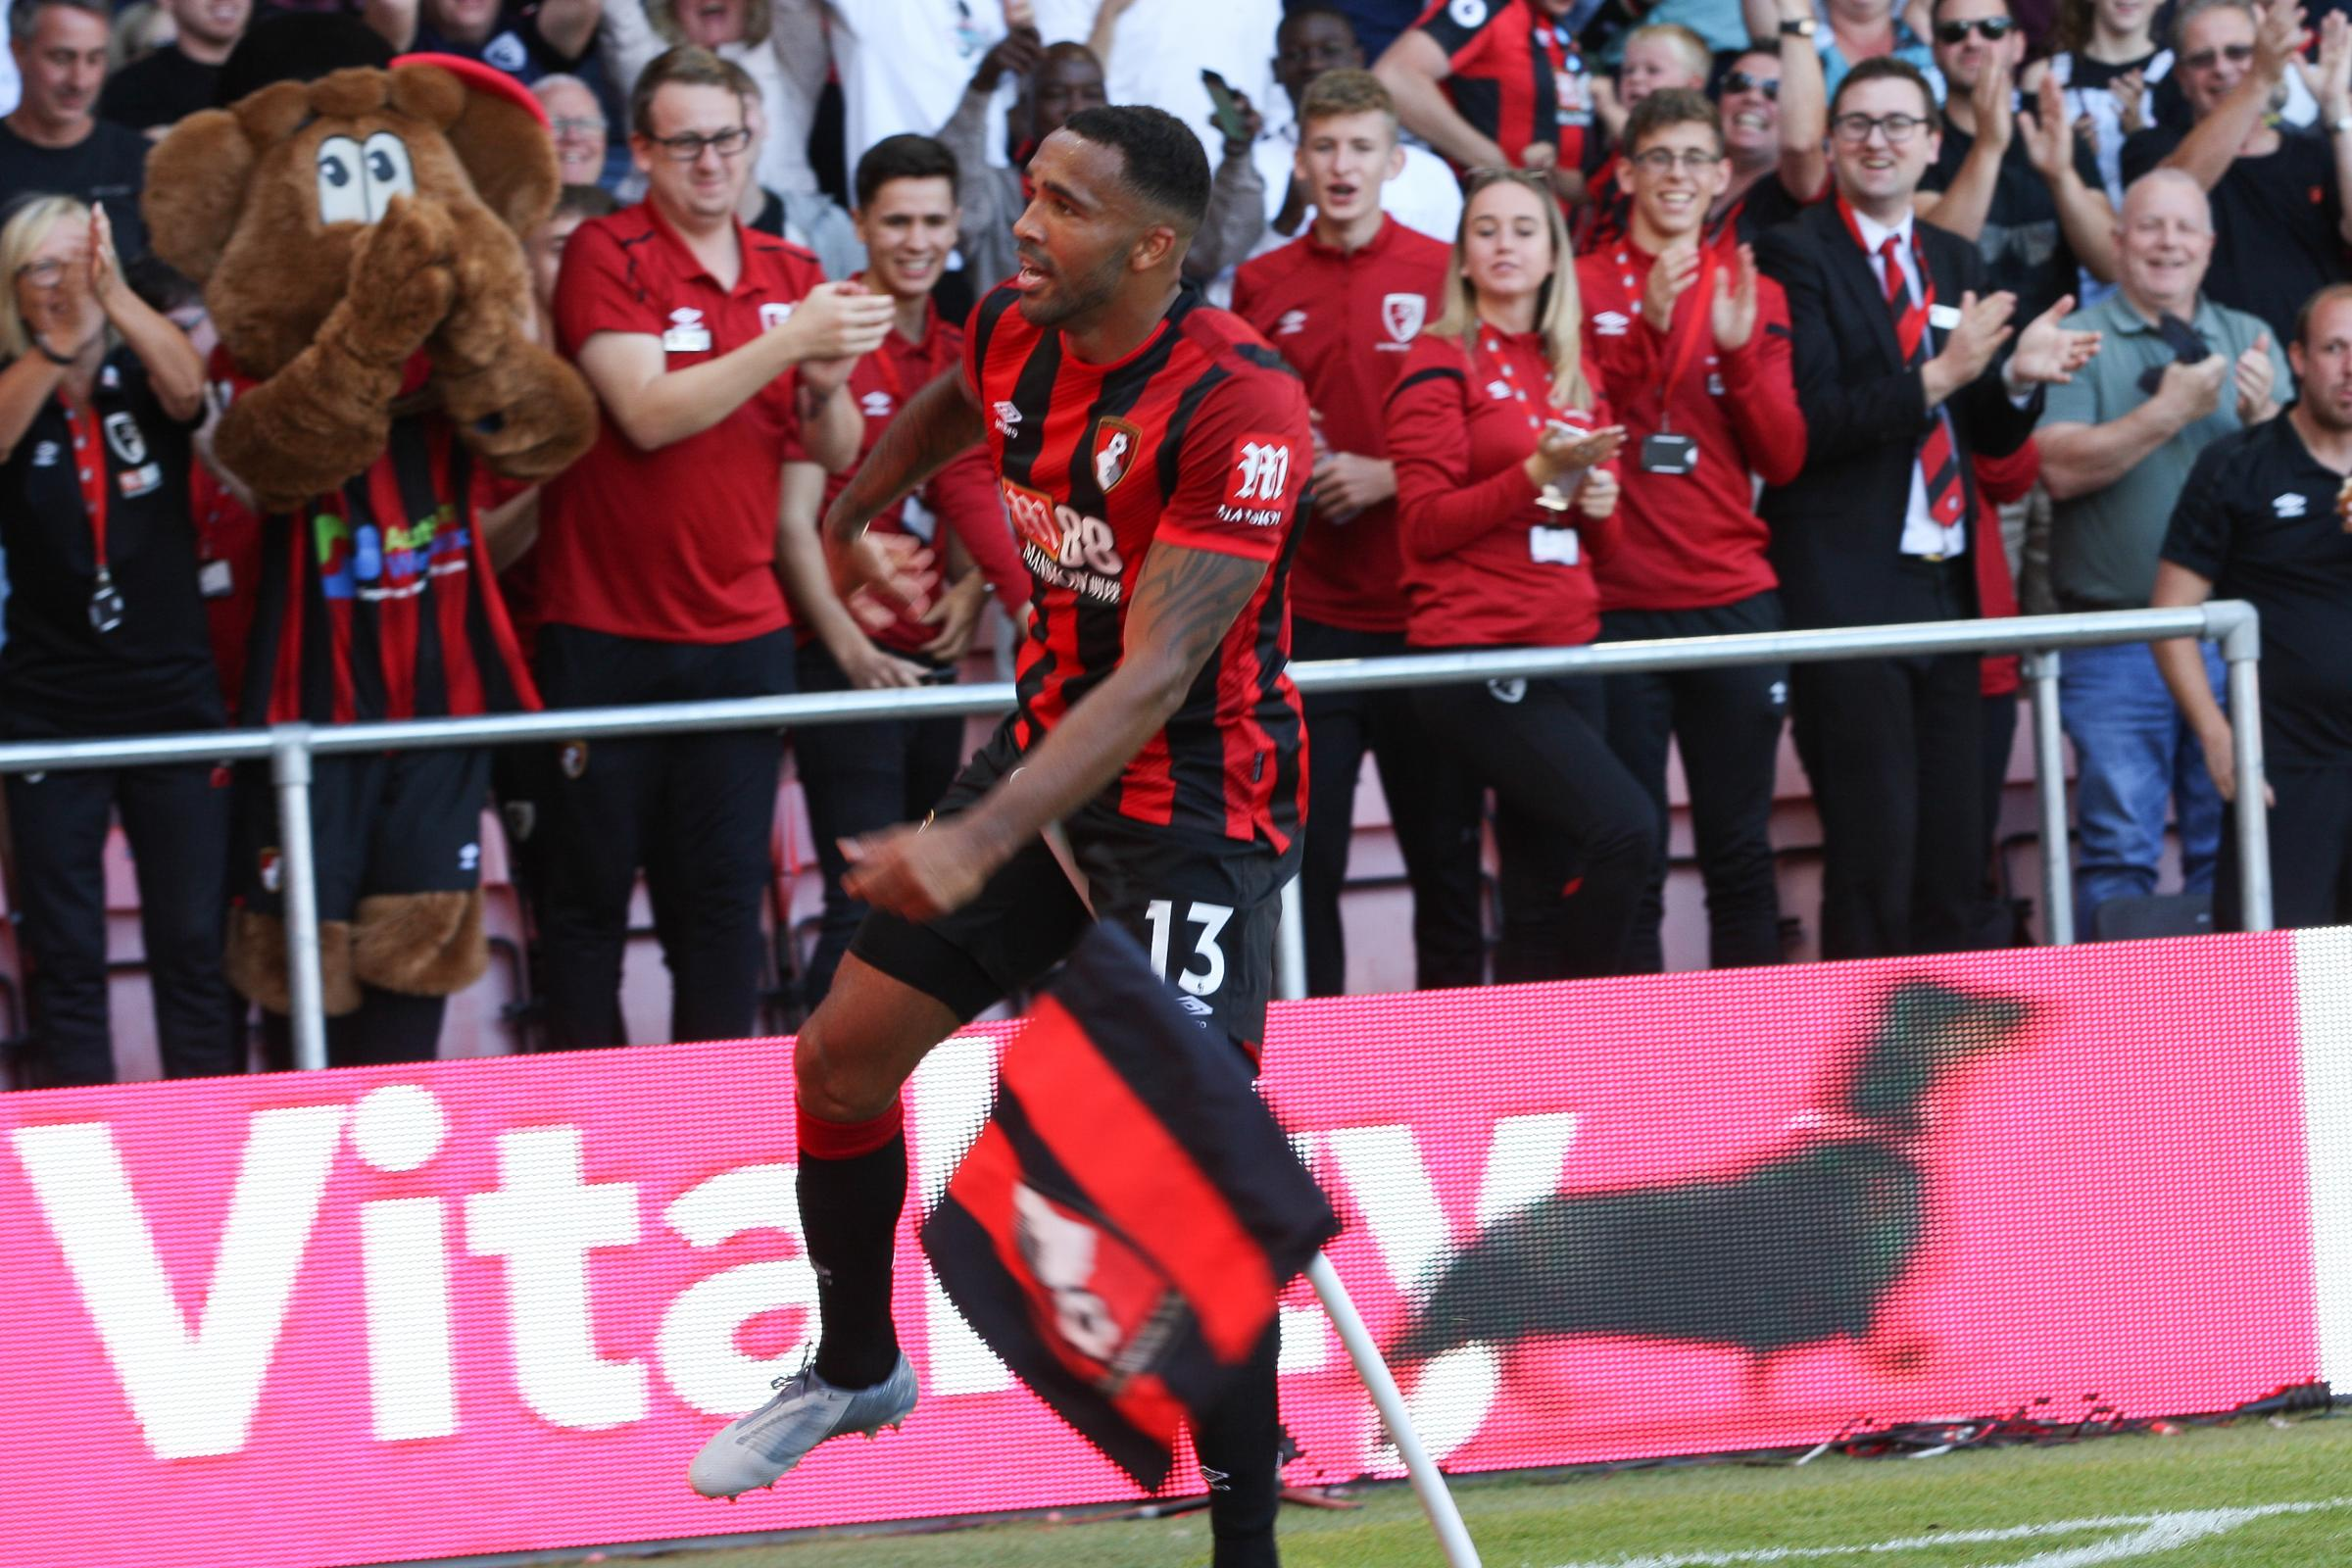 AFC Bournemouth star Callum Wilson one of five players shortlisted by Manchester United, according to report